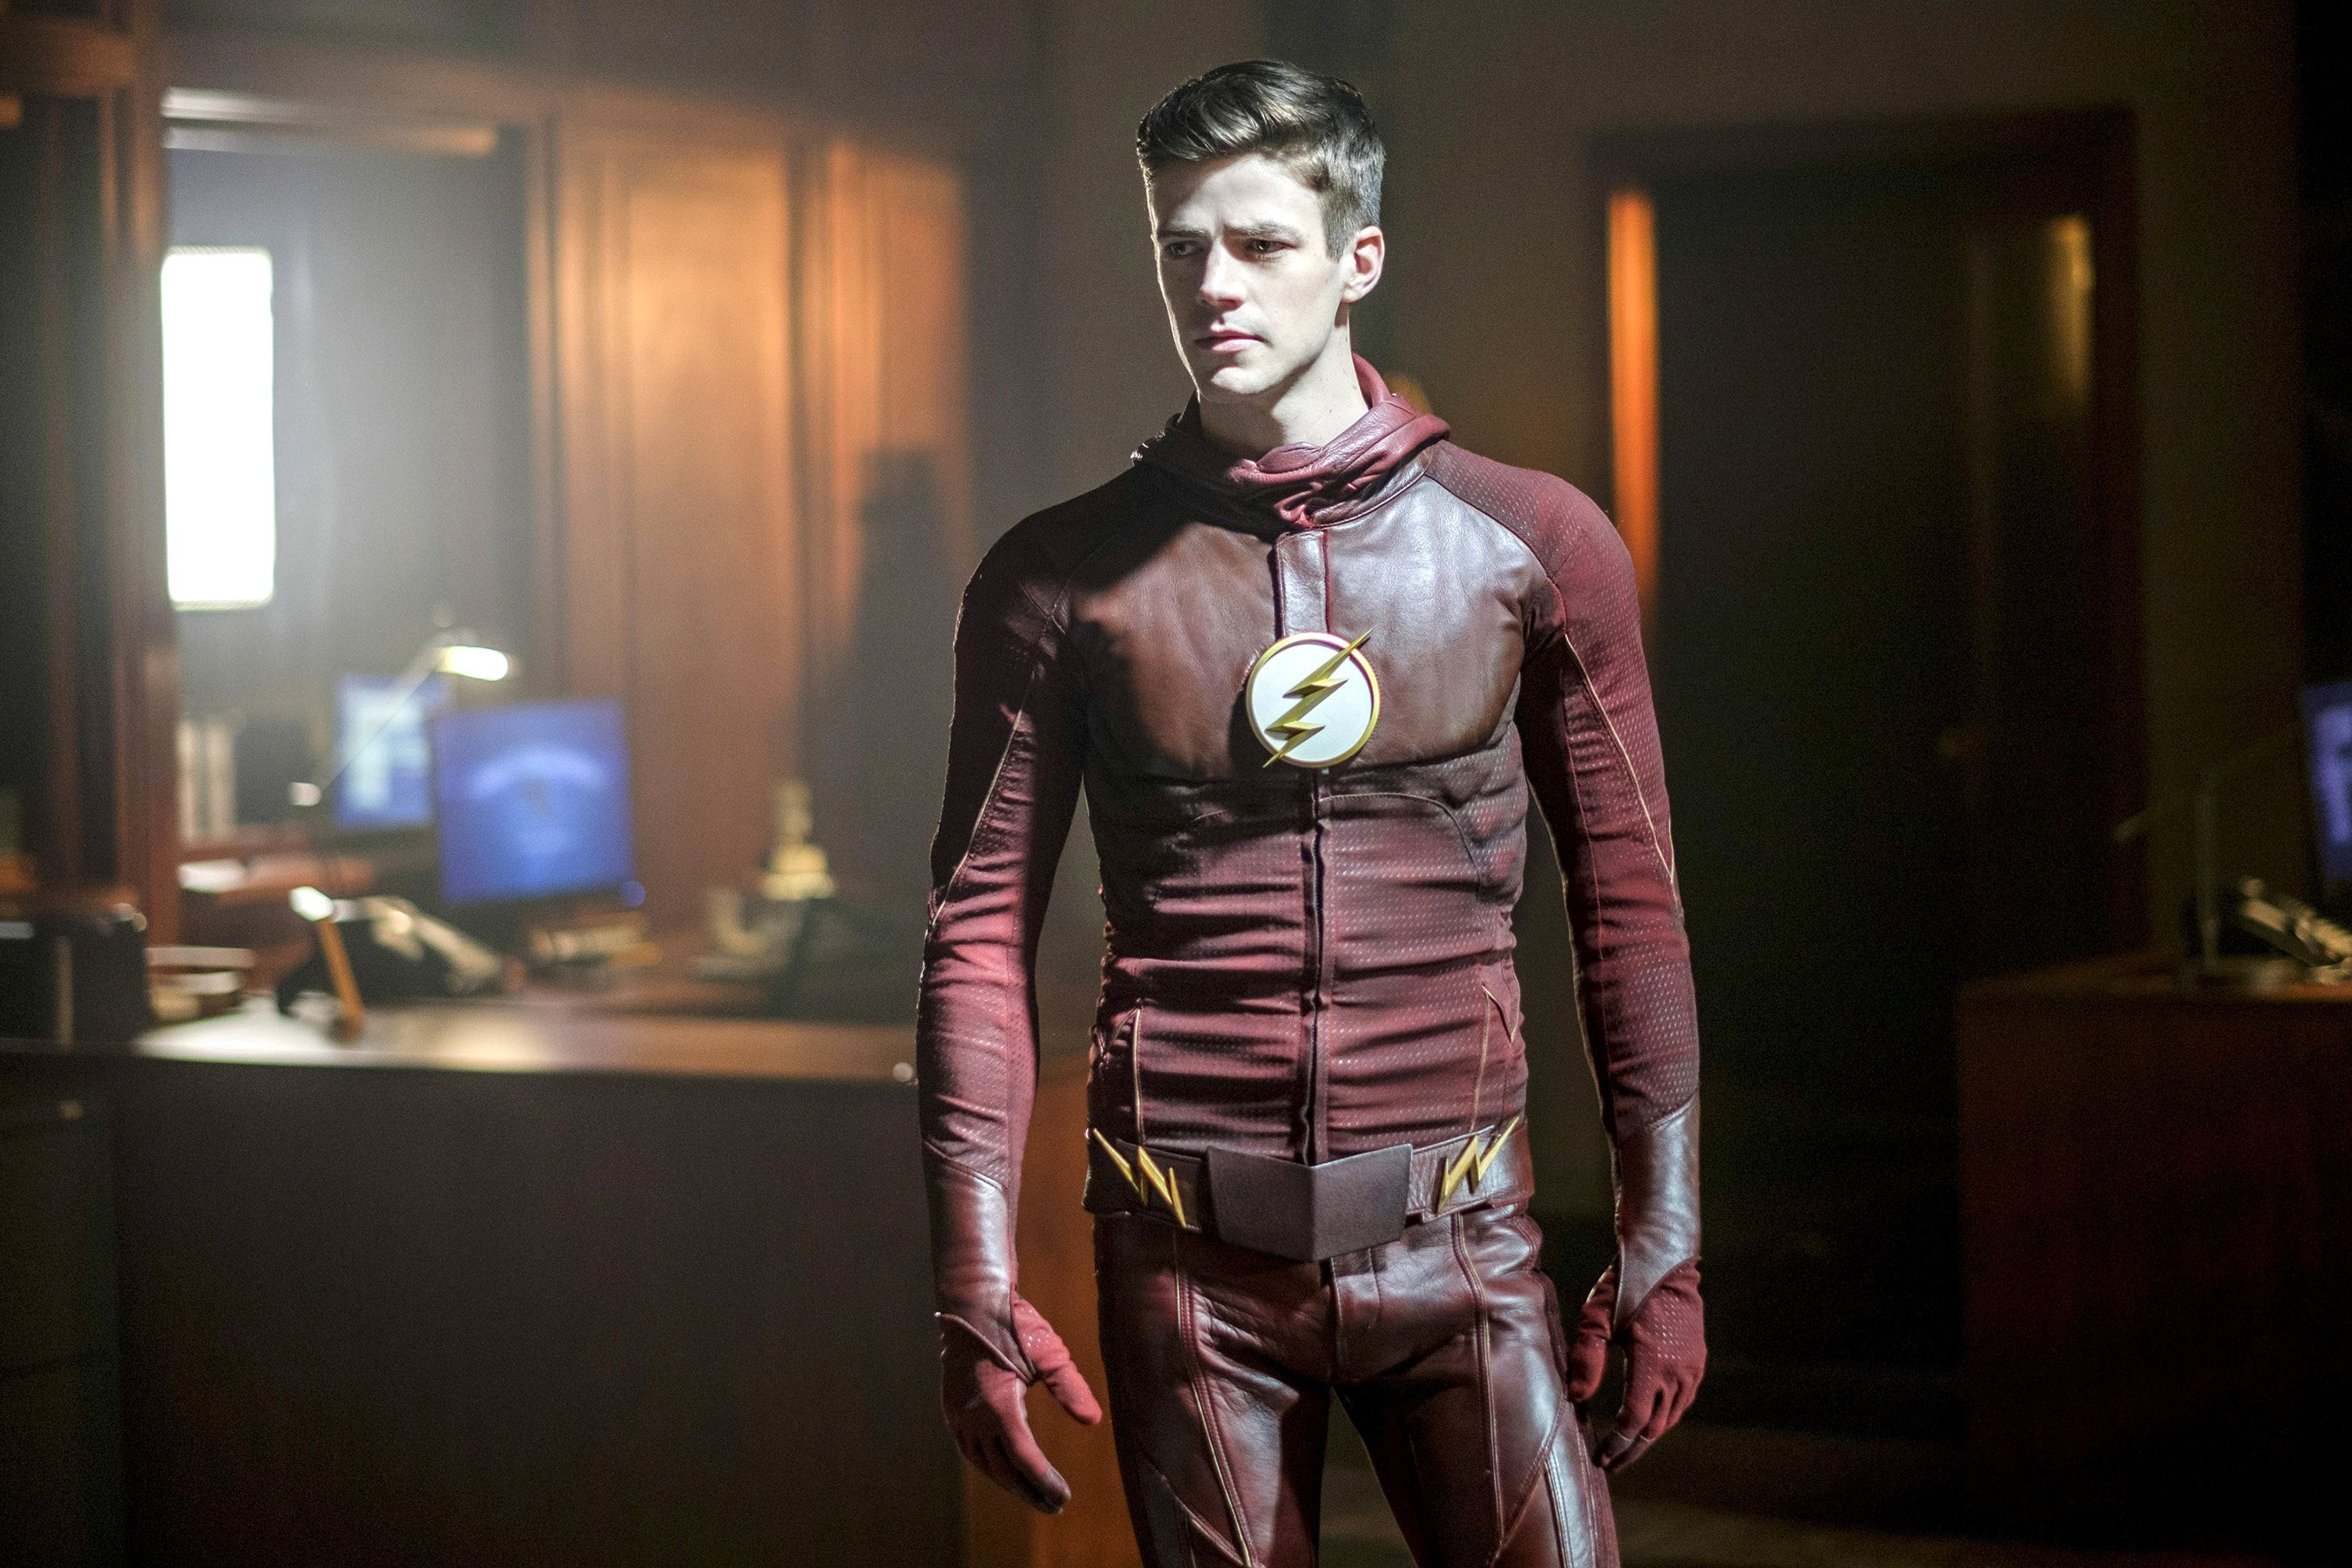 The Flash CW Images Barry Allen Unmasked Wallpaper And